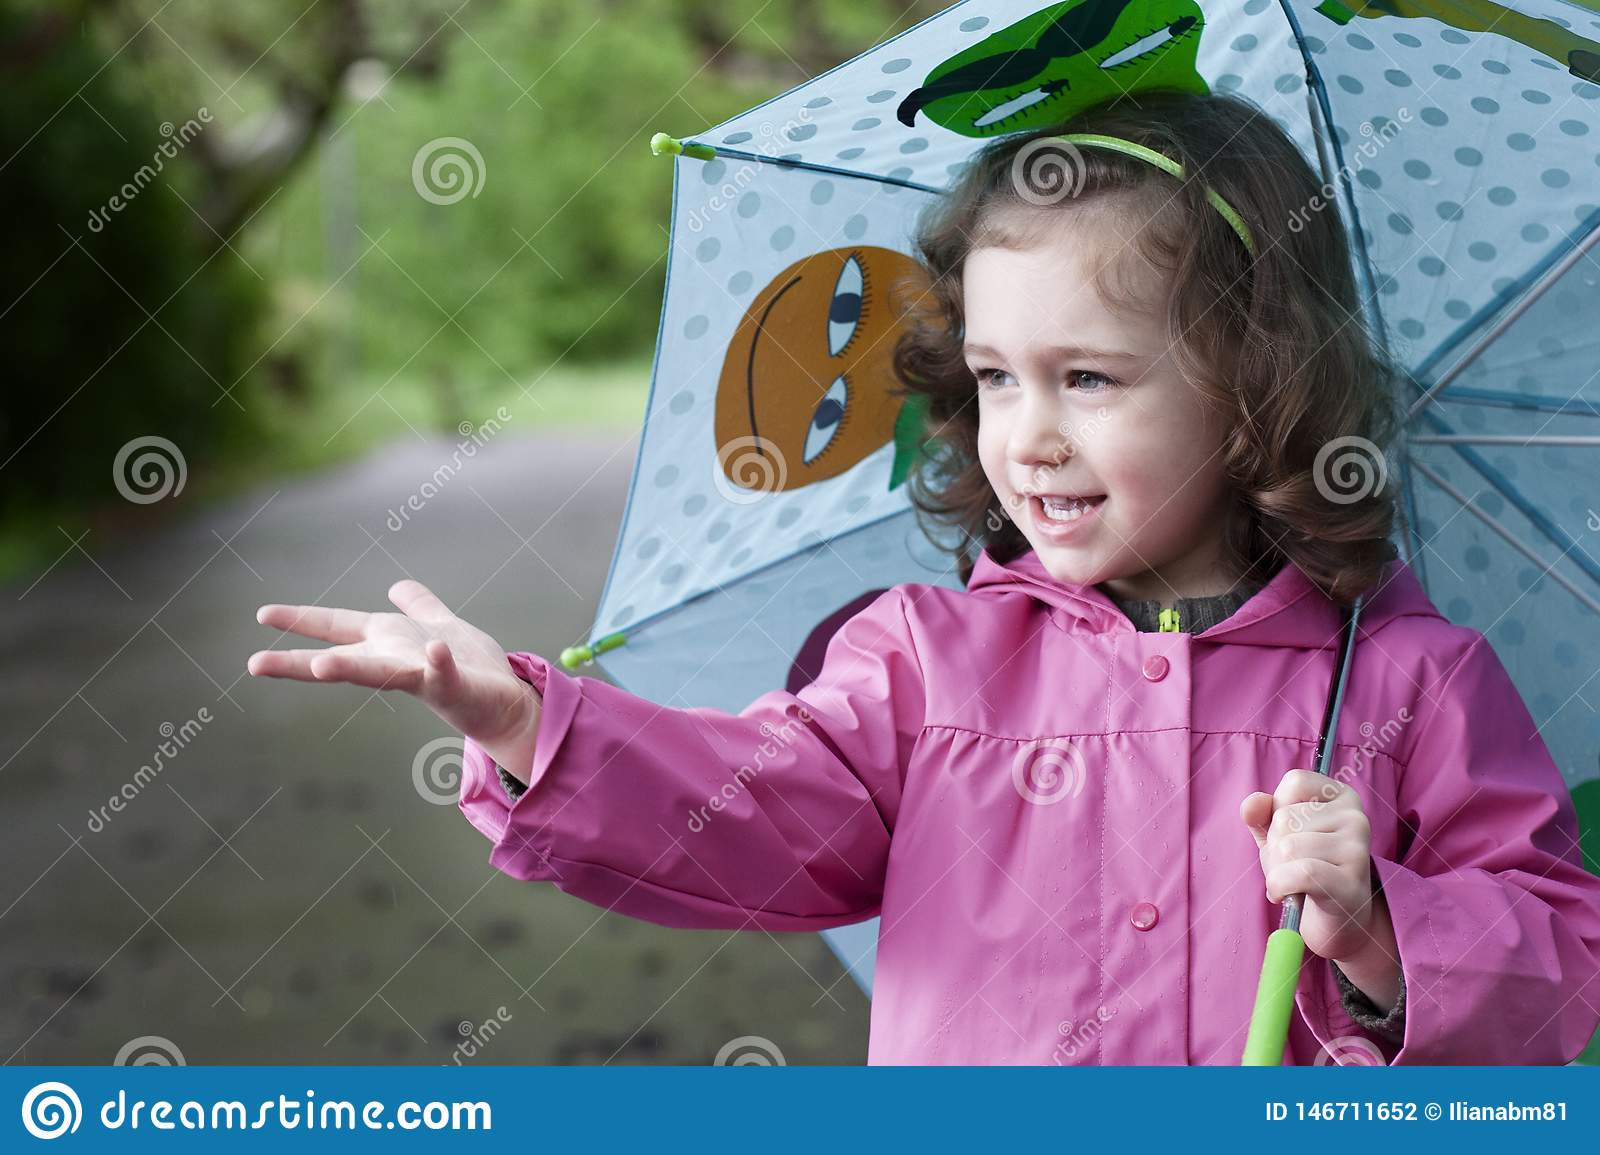 A happy little girl in a rainy day